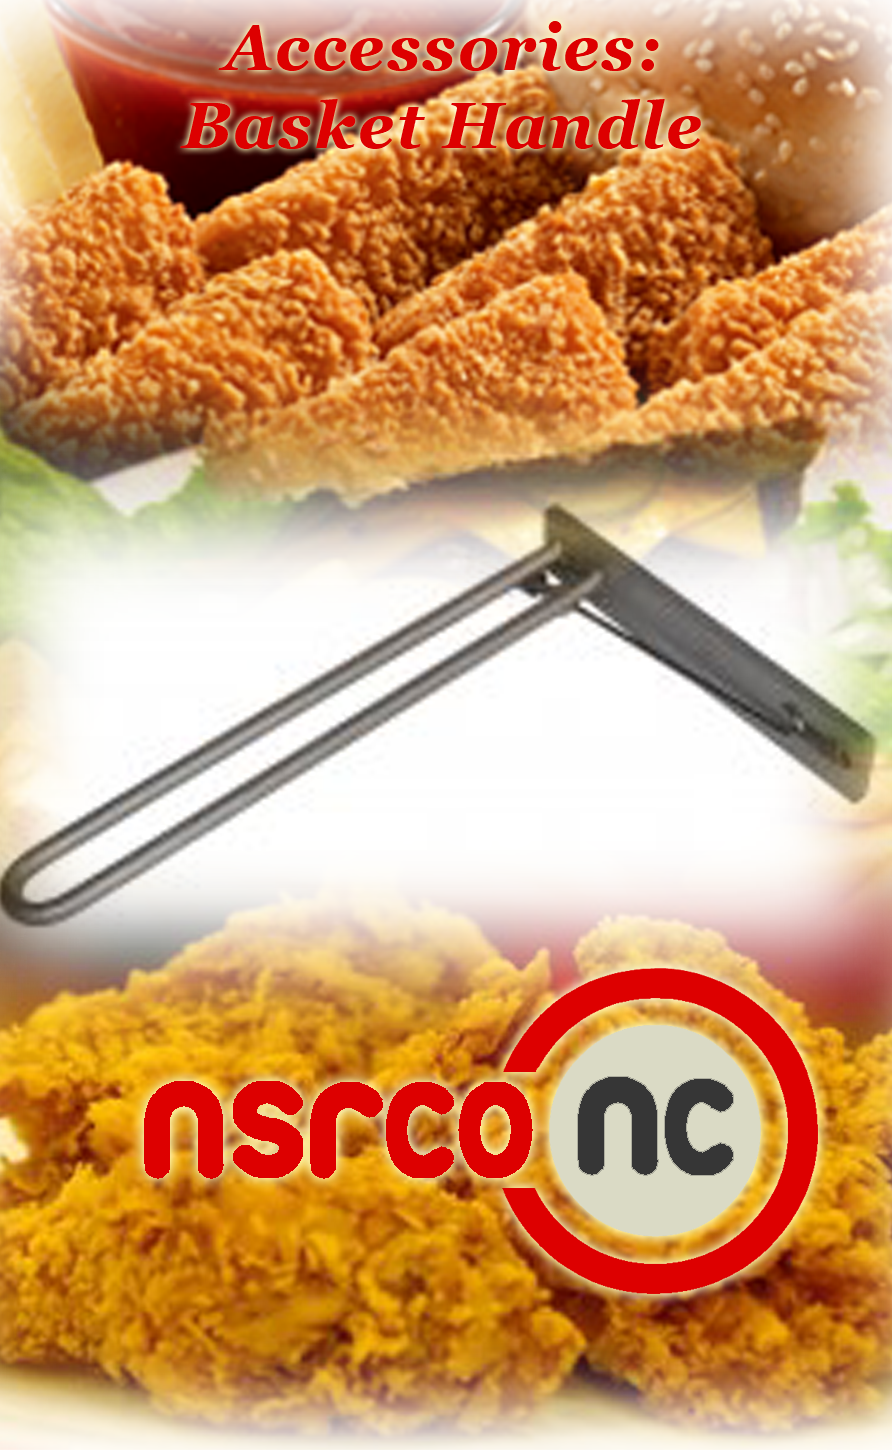 prssr fryer 1800 basket handle